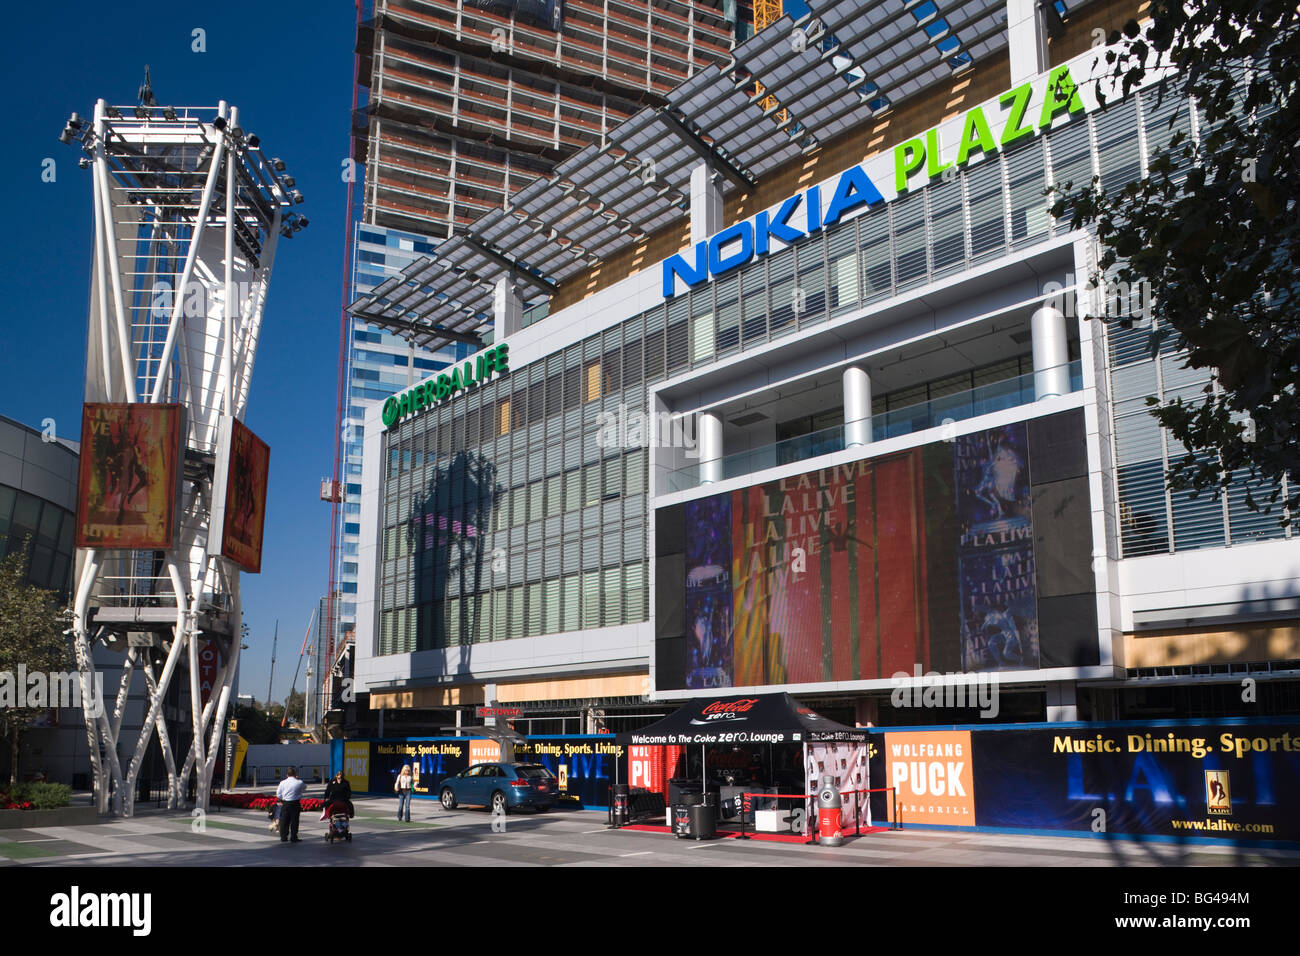 USA, California, Los Angeles, Downtown, Nokia Plaza - Stock Image